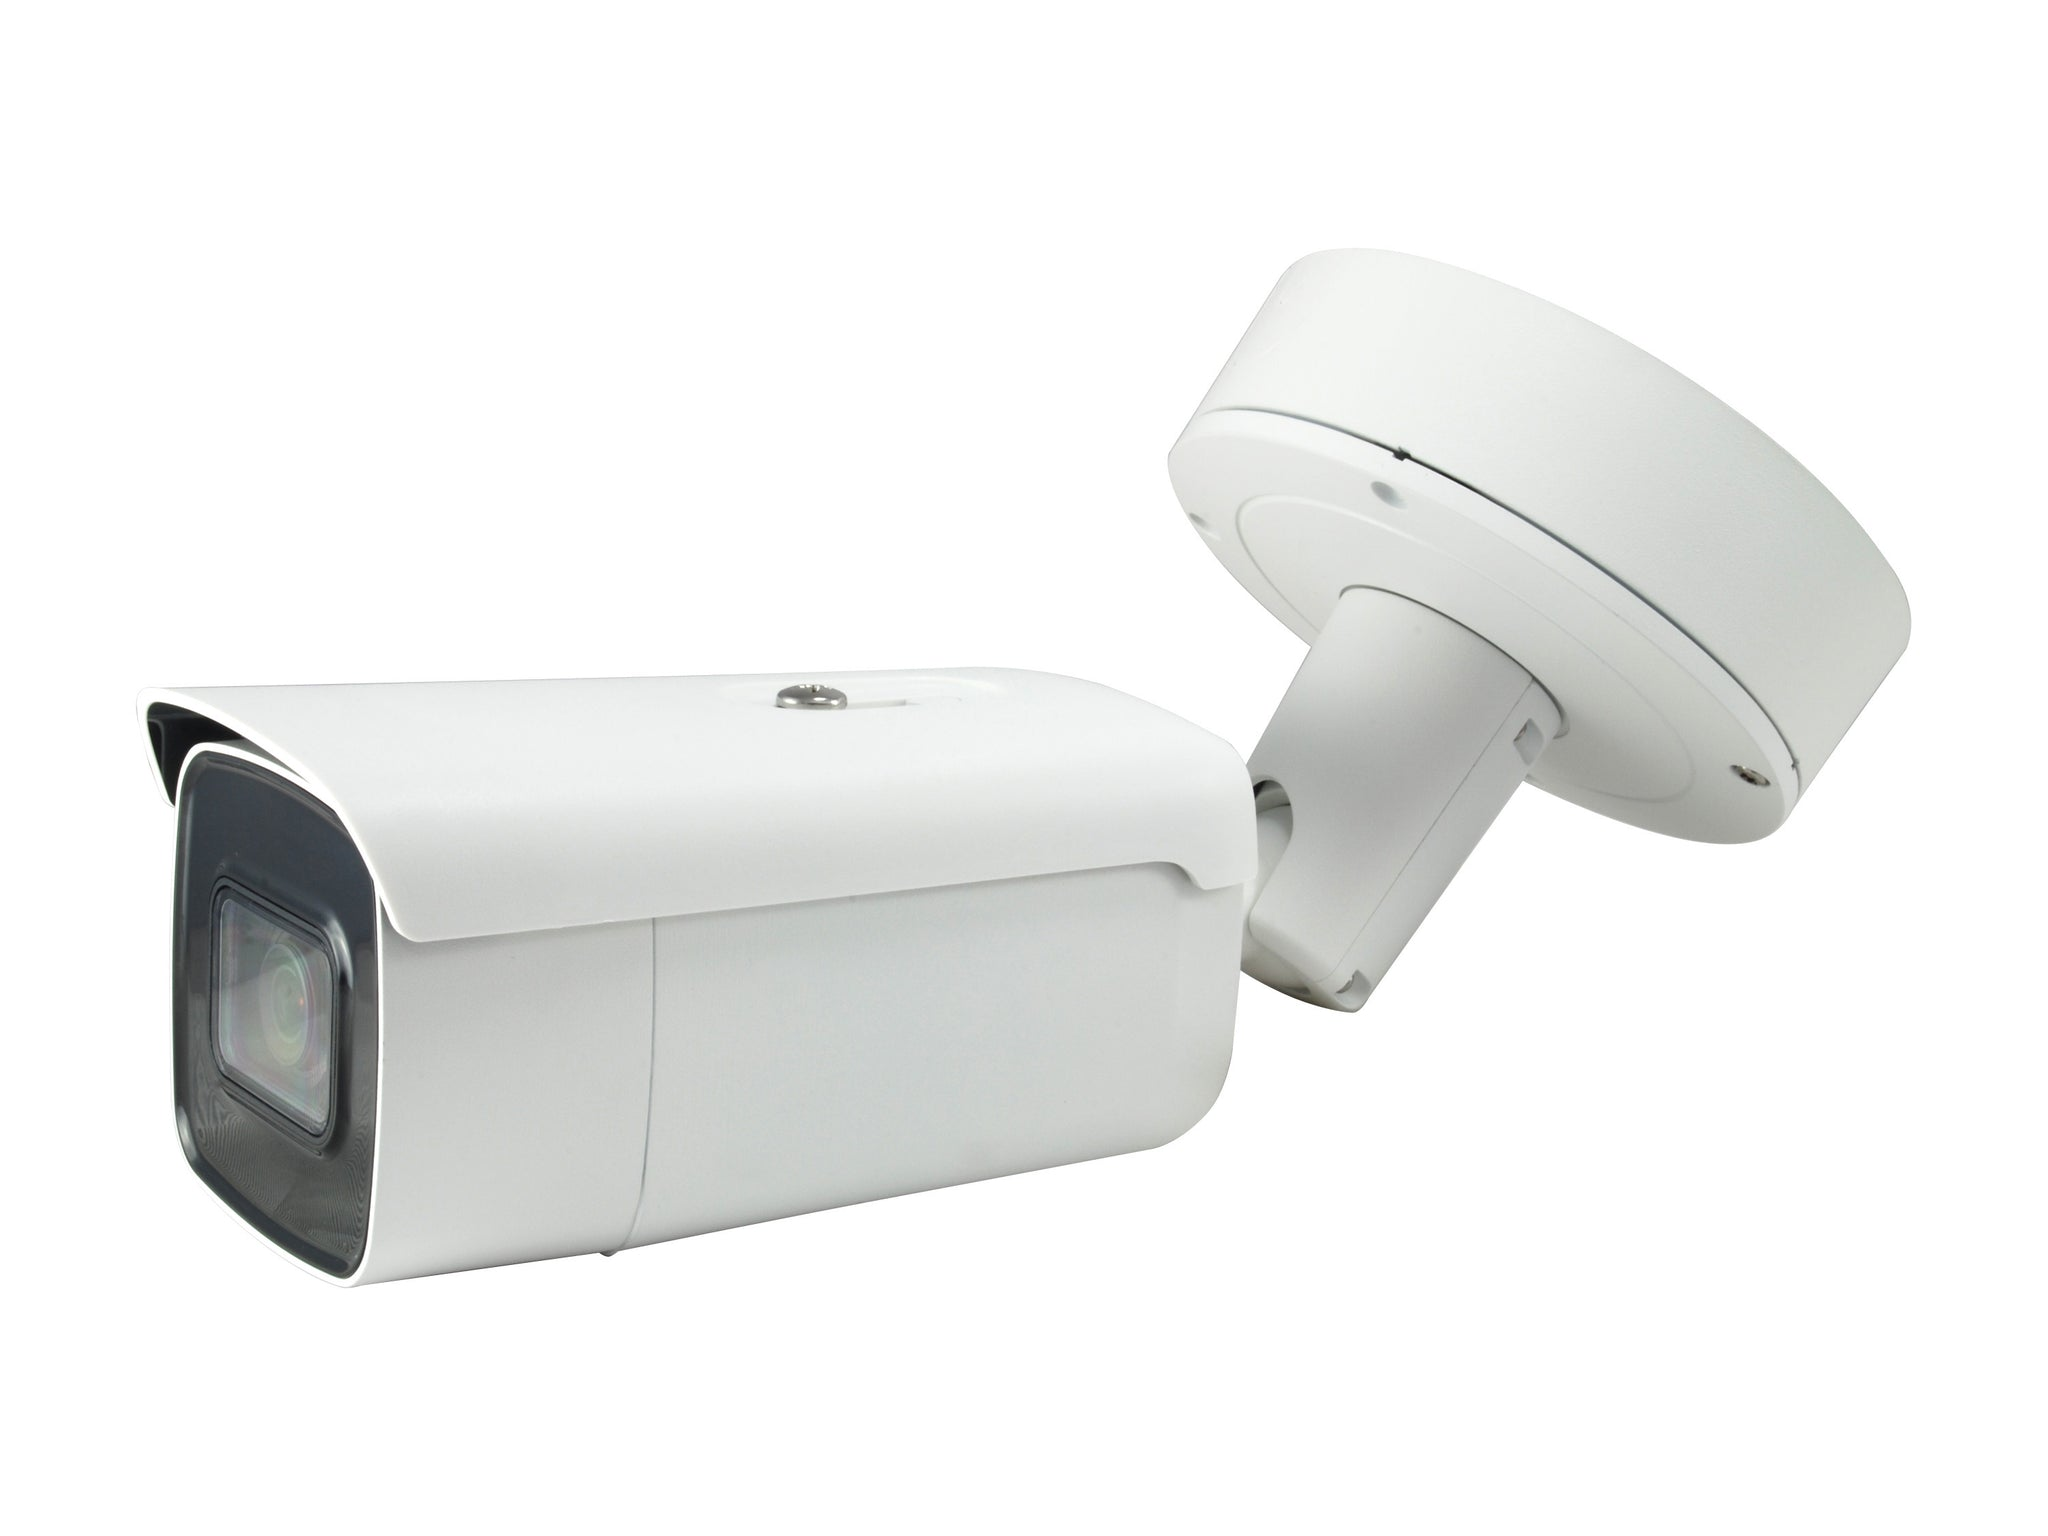 FCS-5095 Fixed IP, 8MP, H.265/264, 802.3af PoE, 4.3X Optical Zoom, Indoor/Outdoor,